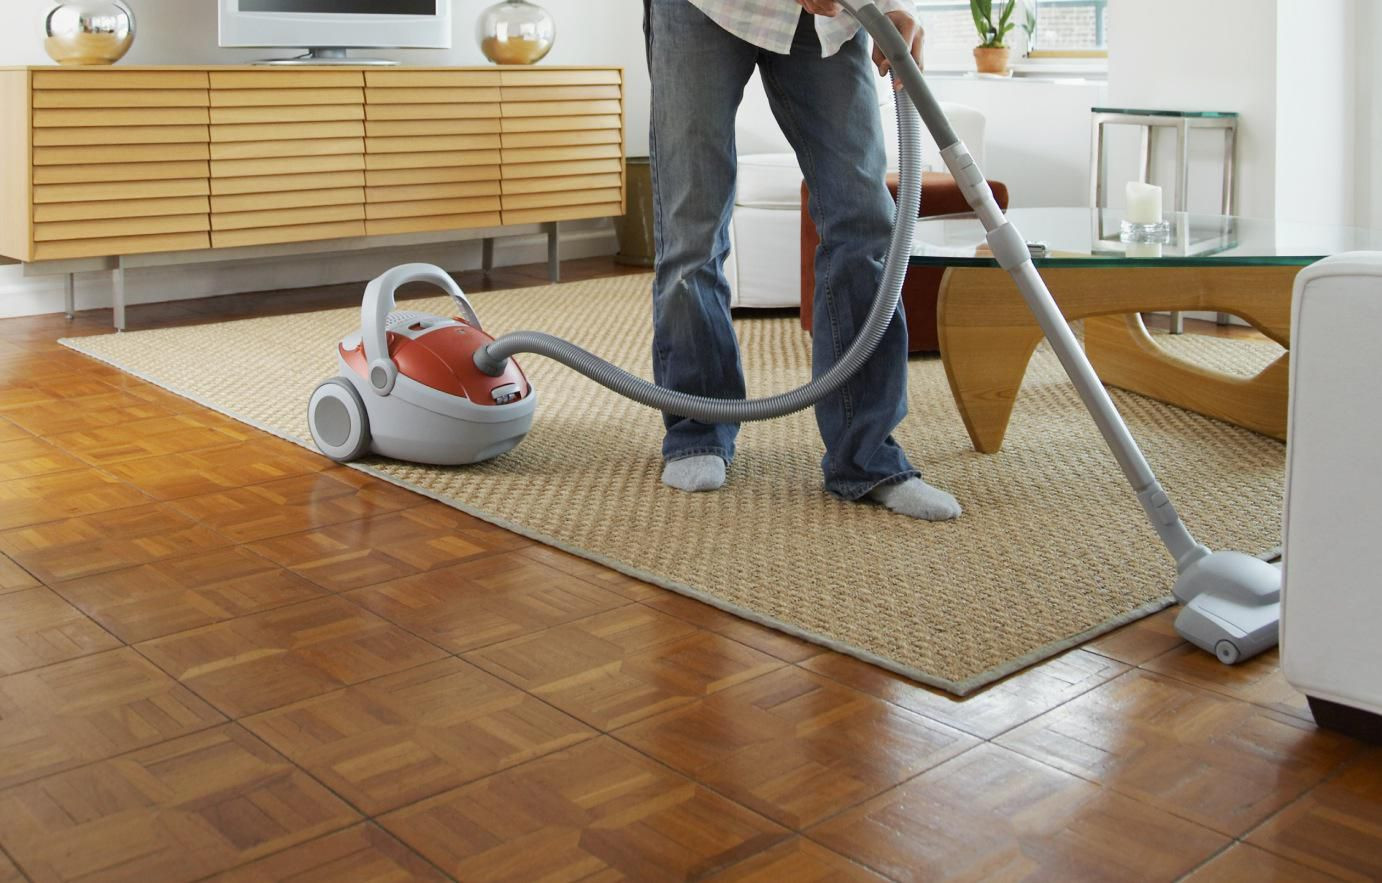 pet friendly hardwood floors of the best ways to get rid of fleas in the house and yard with sb10069129m 002 56a493ba5f9b58b7d0d7a465